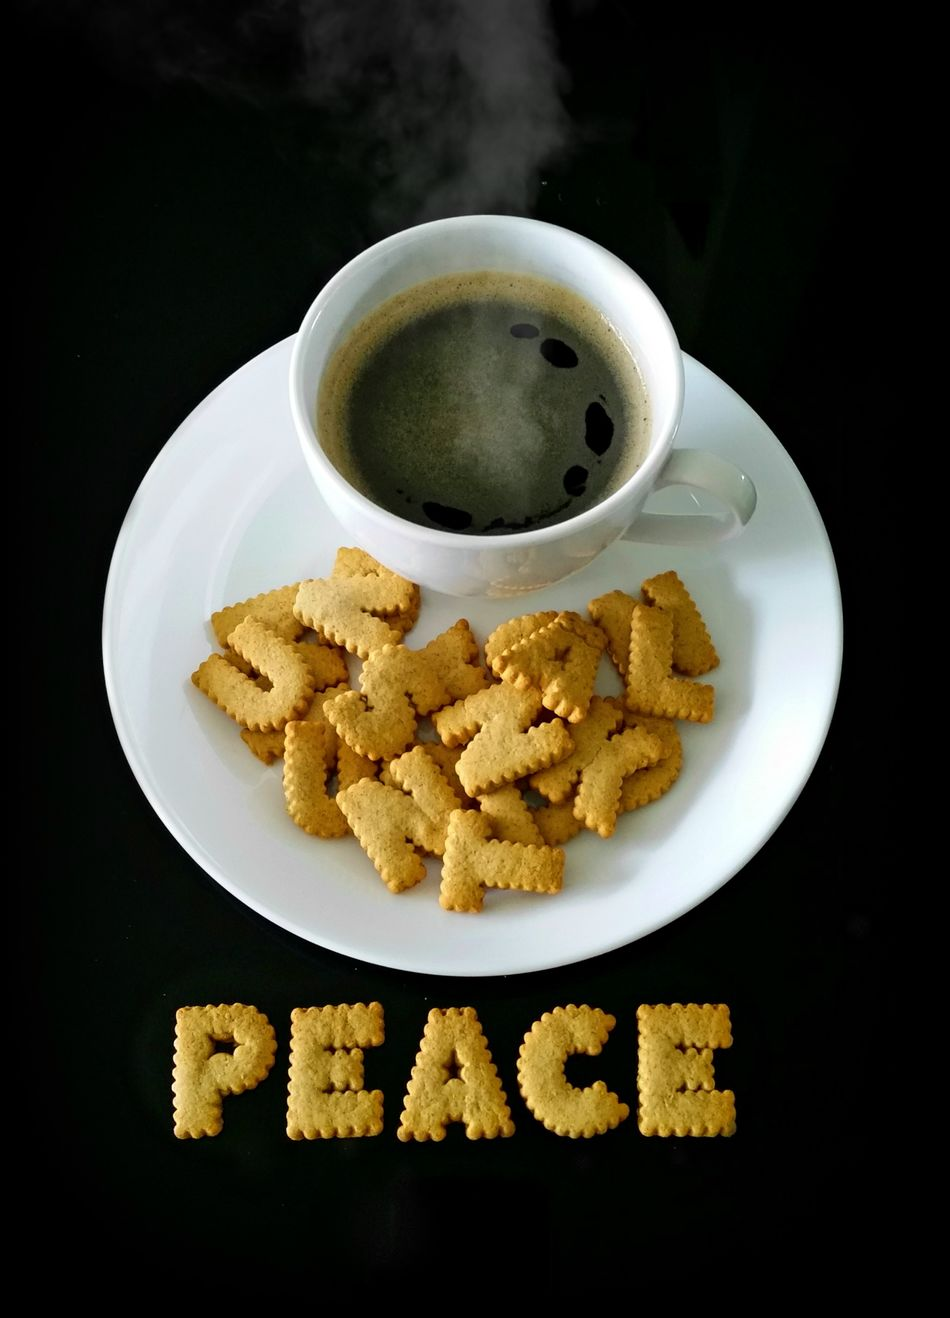 Biscuitcoffee Black Background Blackcoffee Coffee Hotcoffee No People Peace And Quiet Plate